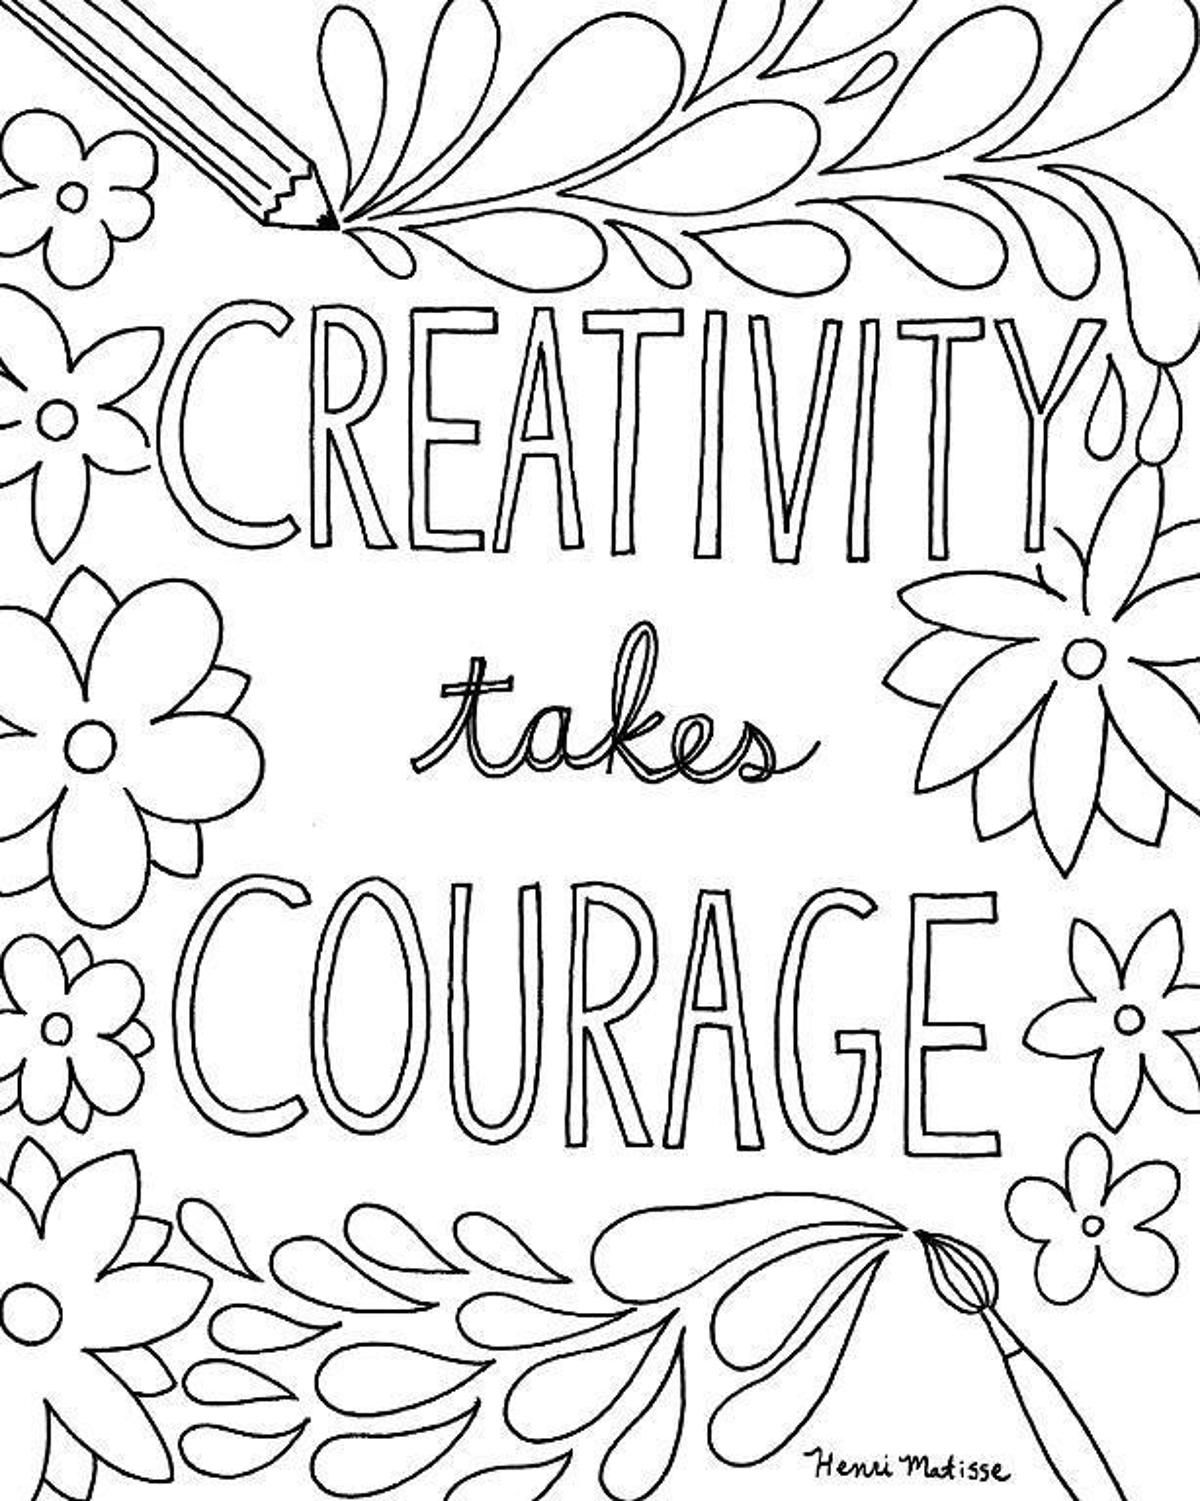 Creativity Takes Courage Coloring Page Quote Coloring